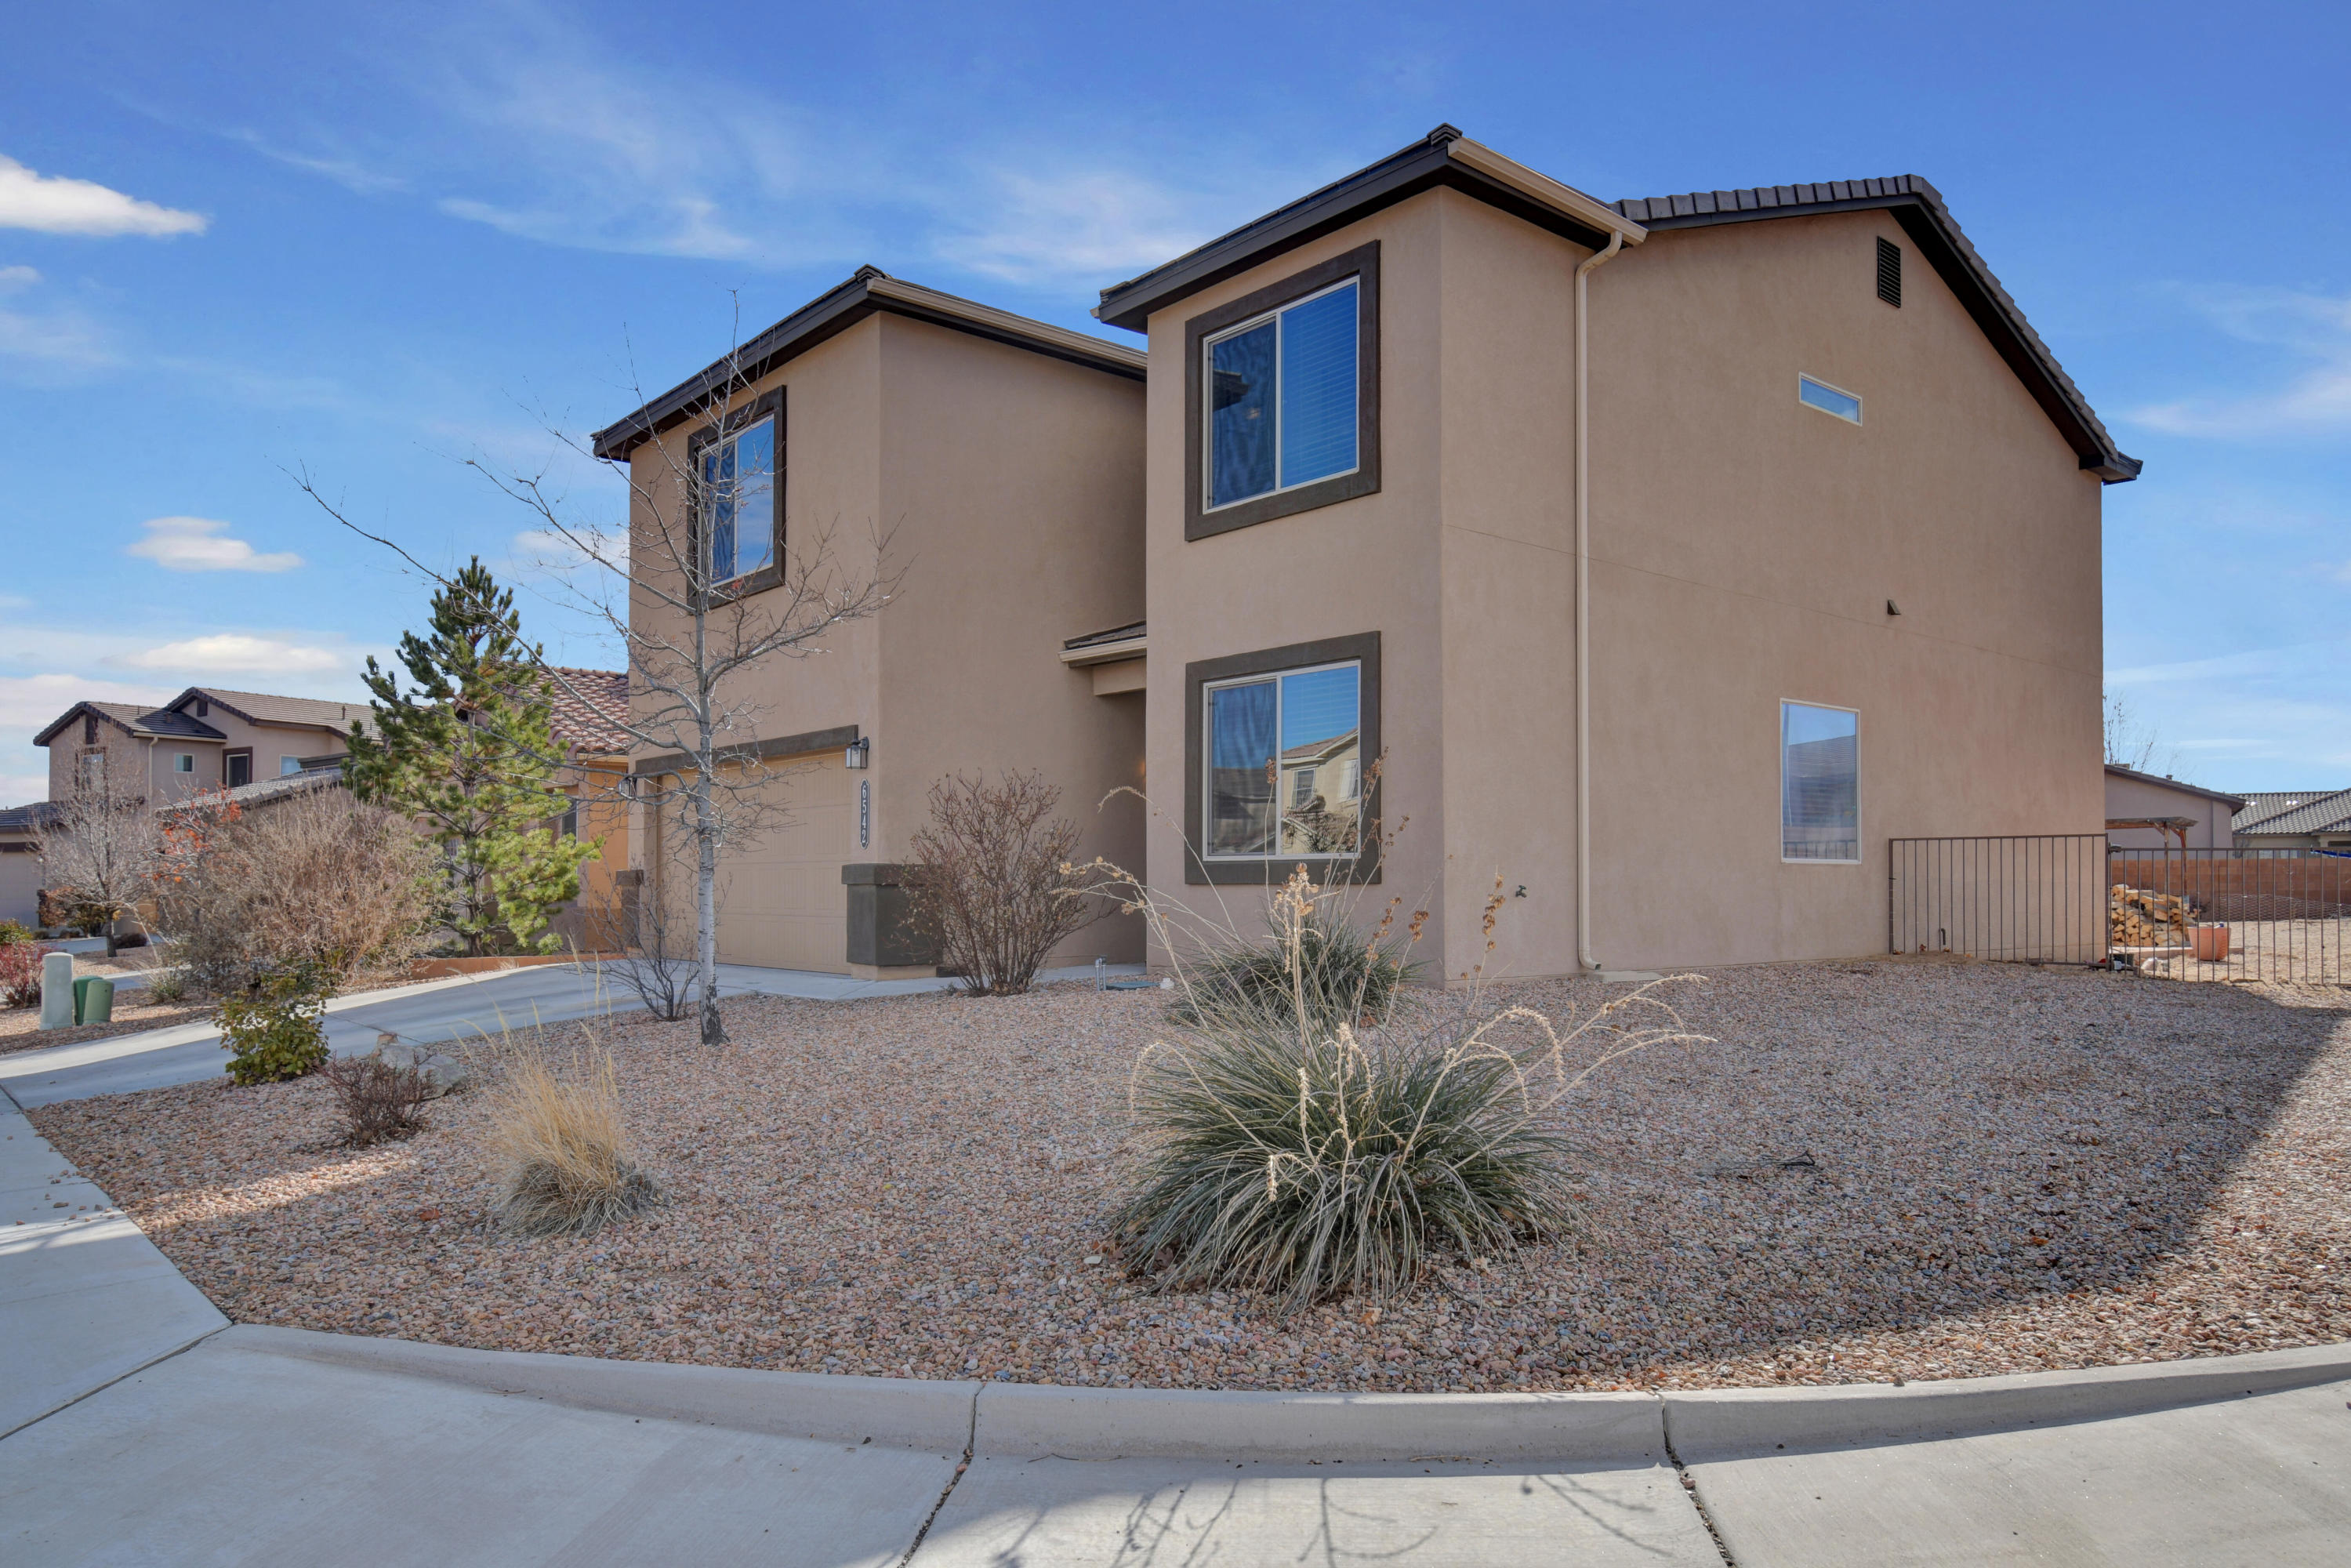 Come check out this great one owner, well cared for home in the Anasazi Ridge neighborhood! Two living spaces, including a large family room as well as a loft on the second floor. Open kitchen plan with an eat in kitchen and separate dining area. 4 good sized bedrooms upstairs and an office on the main floor. Enjoy natural lighting throughout the house and low-e windows. This home sits on a larger corner lot with loads of potential and a back yard access point. Groundwork has been started for a pergola on the back patio. Located close to shopping and restaurants and easy access into Albuquerque from the west side. Don't miss out! Schedule your private showing today!